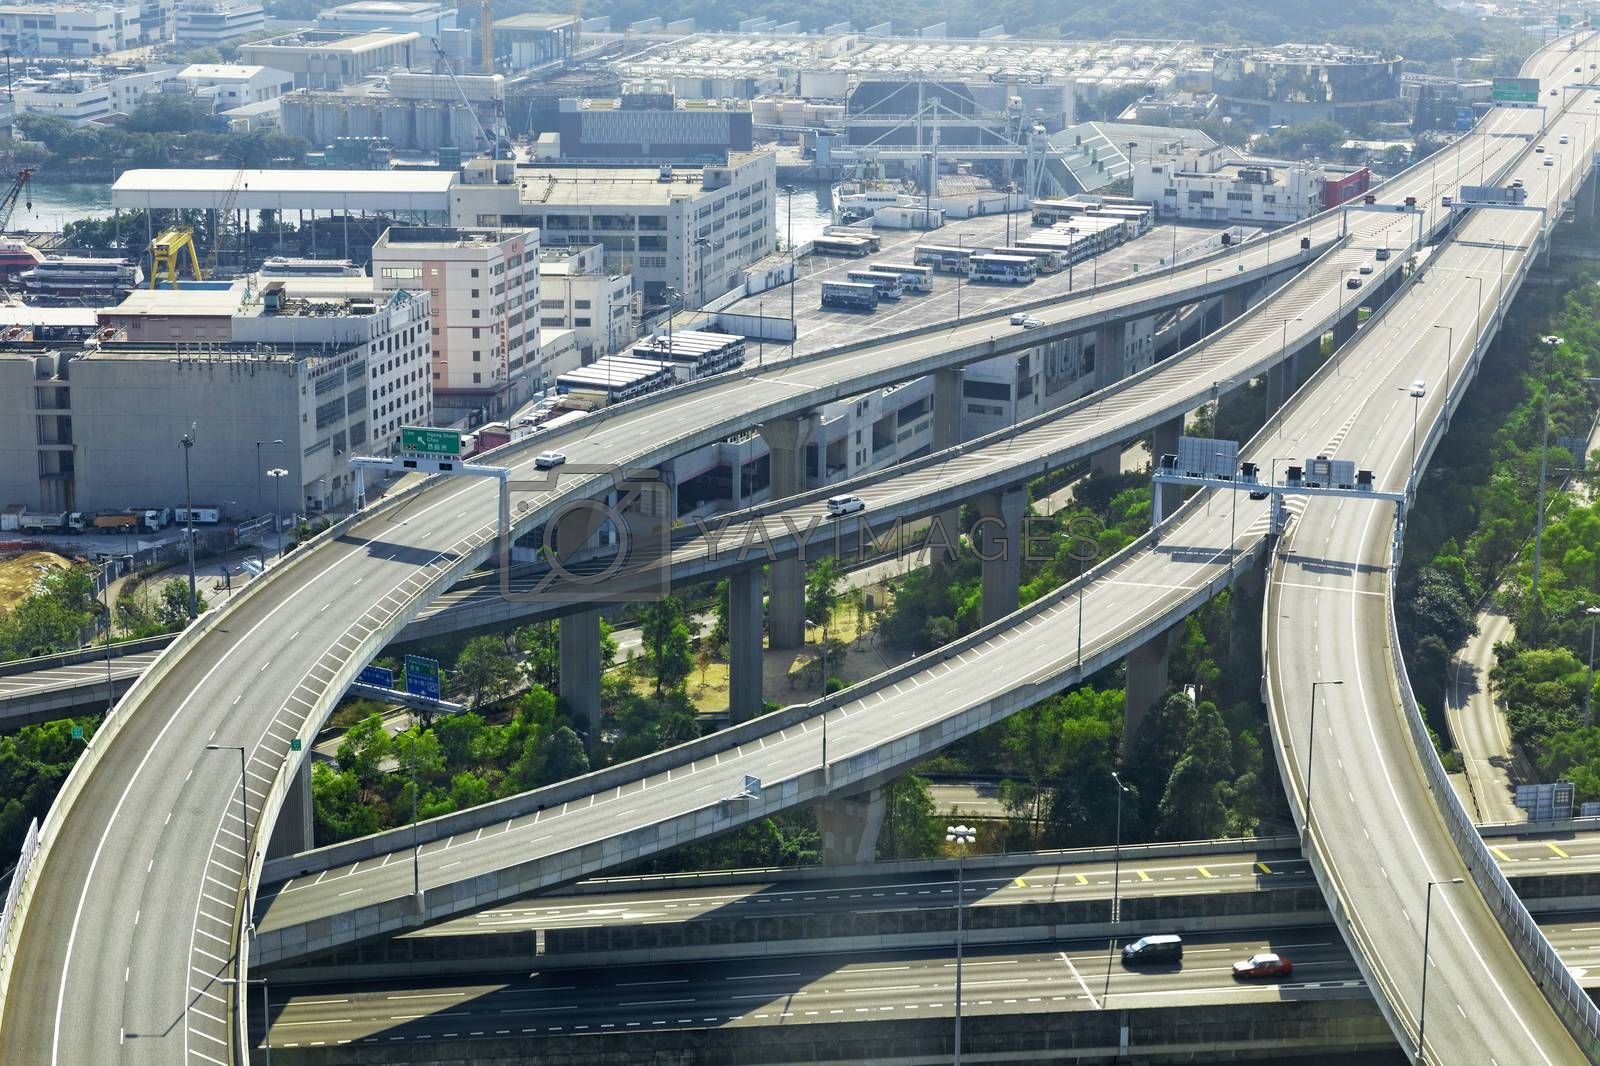 aerial view of the city overpass in early morning by cozyta